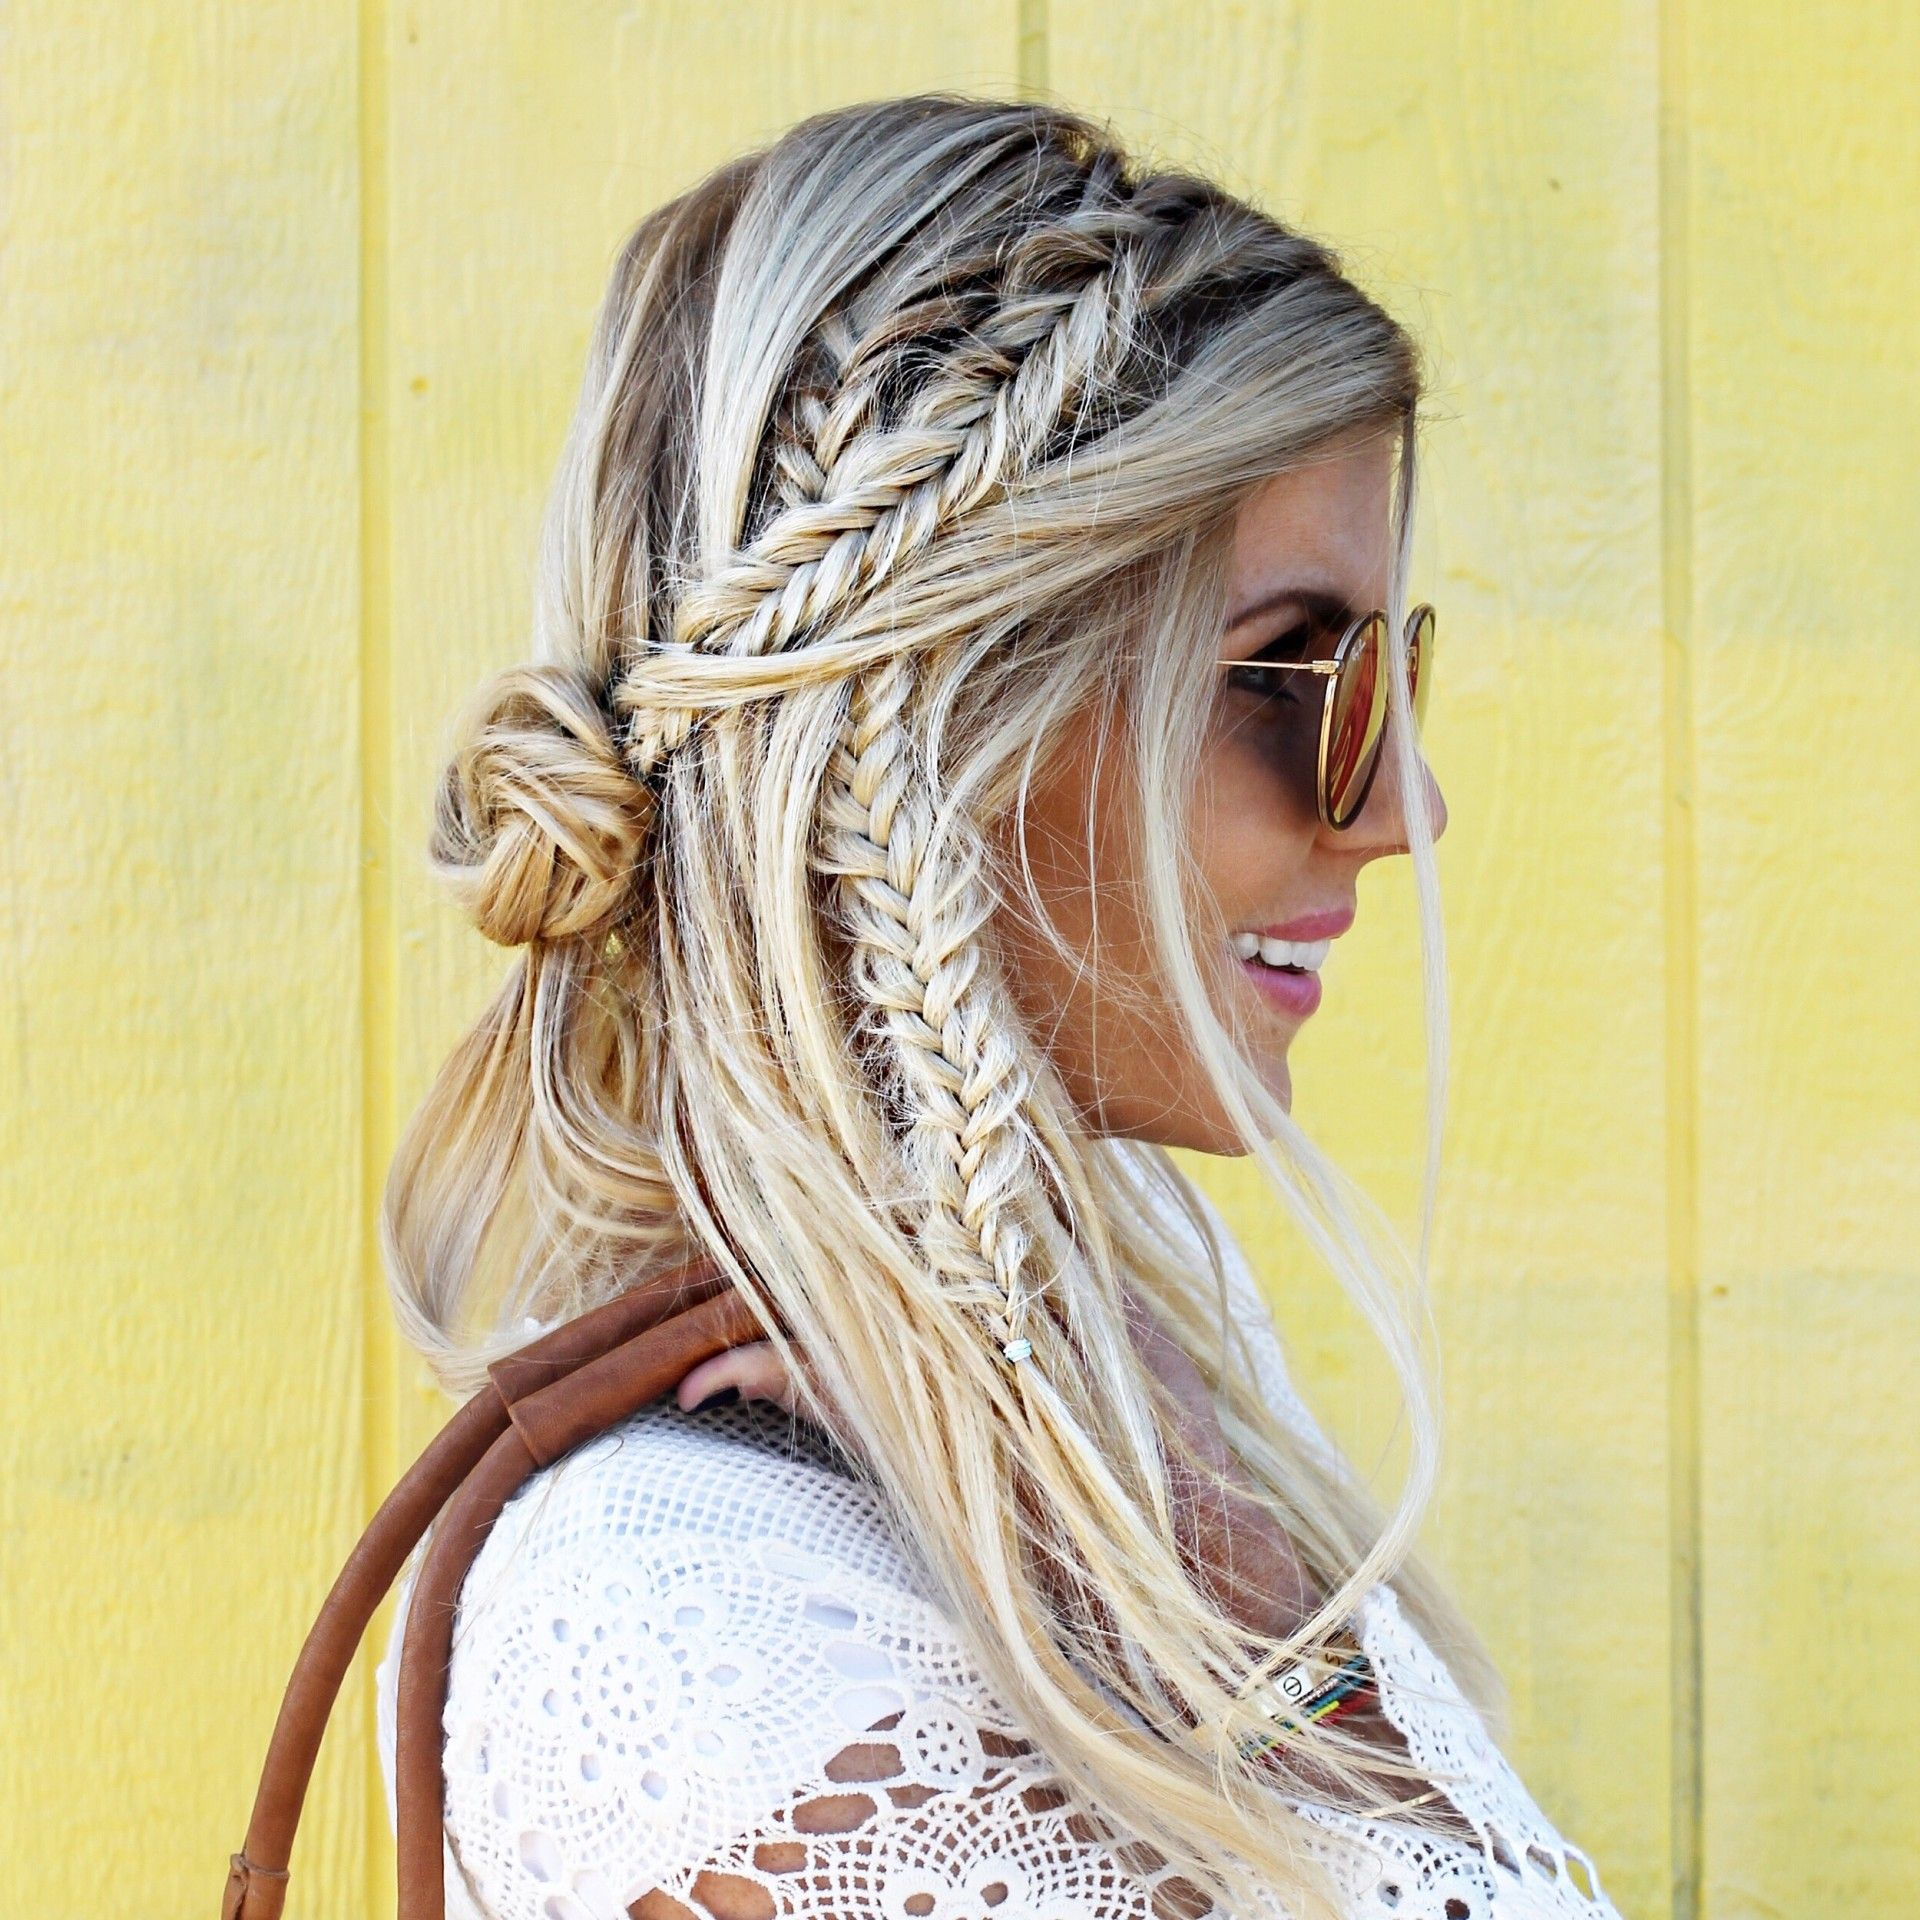 love this braid look great festival hair blonde lunchpails and lipstick braids pinterest. Black Bedroom Furniture Sets. Home Design Ideas